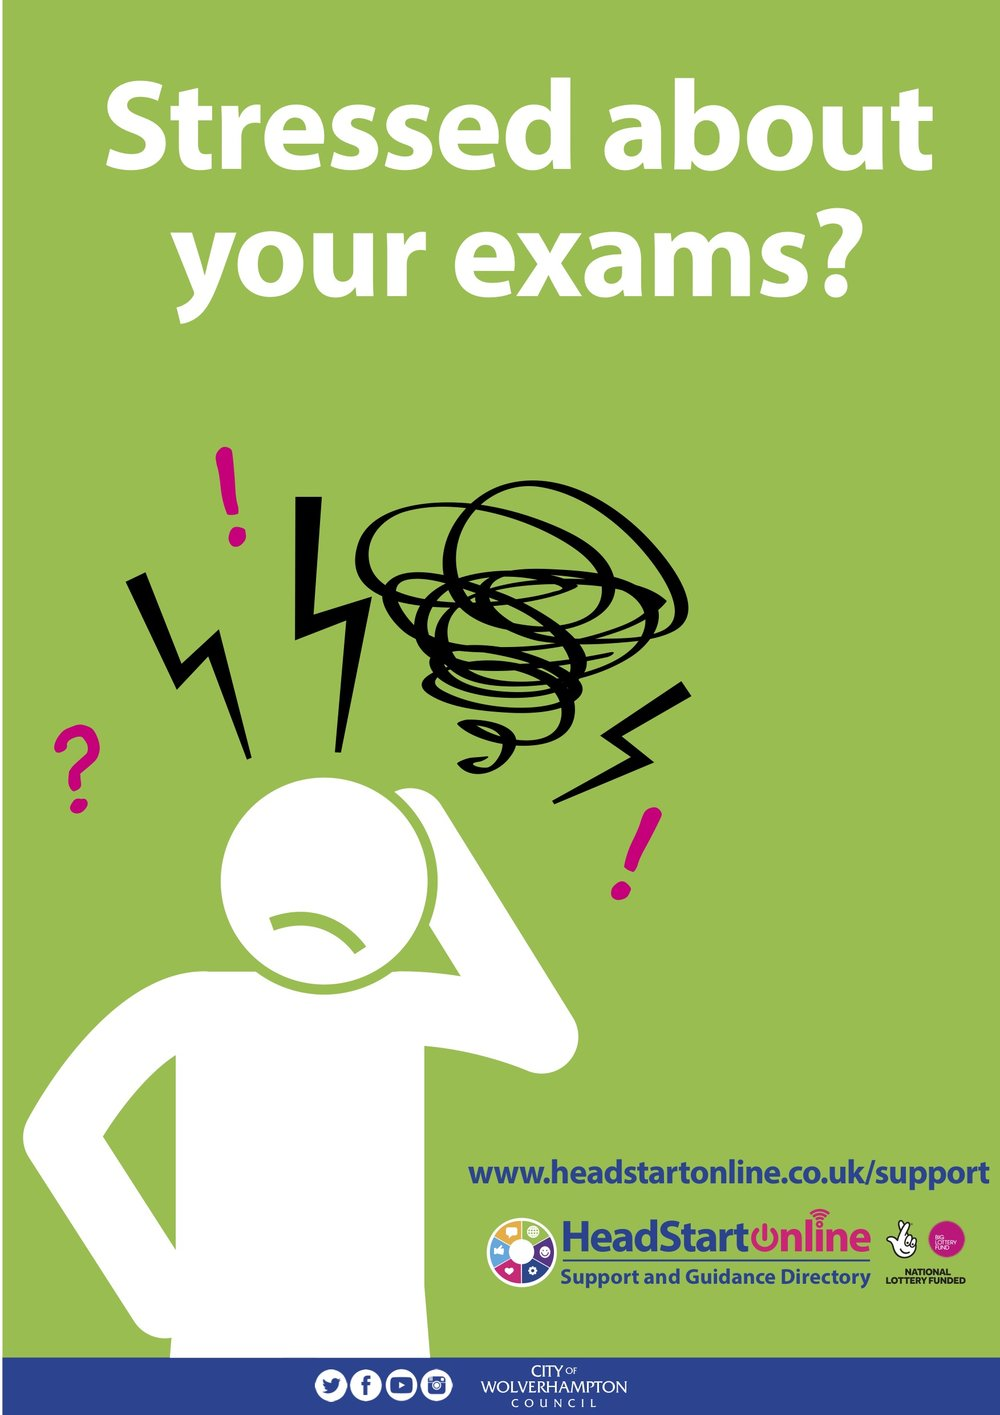 Stressed about your exams?